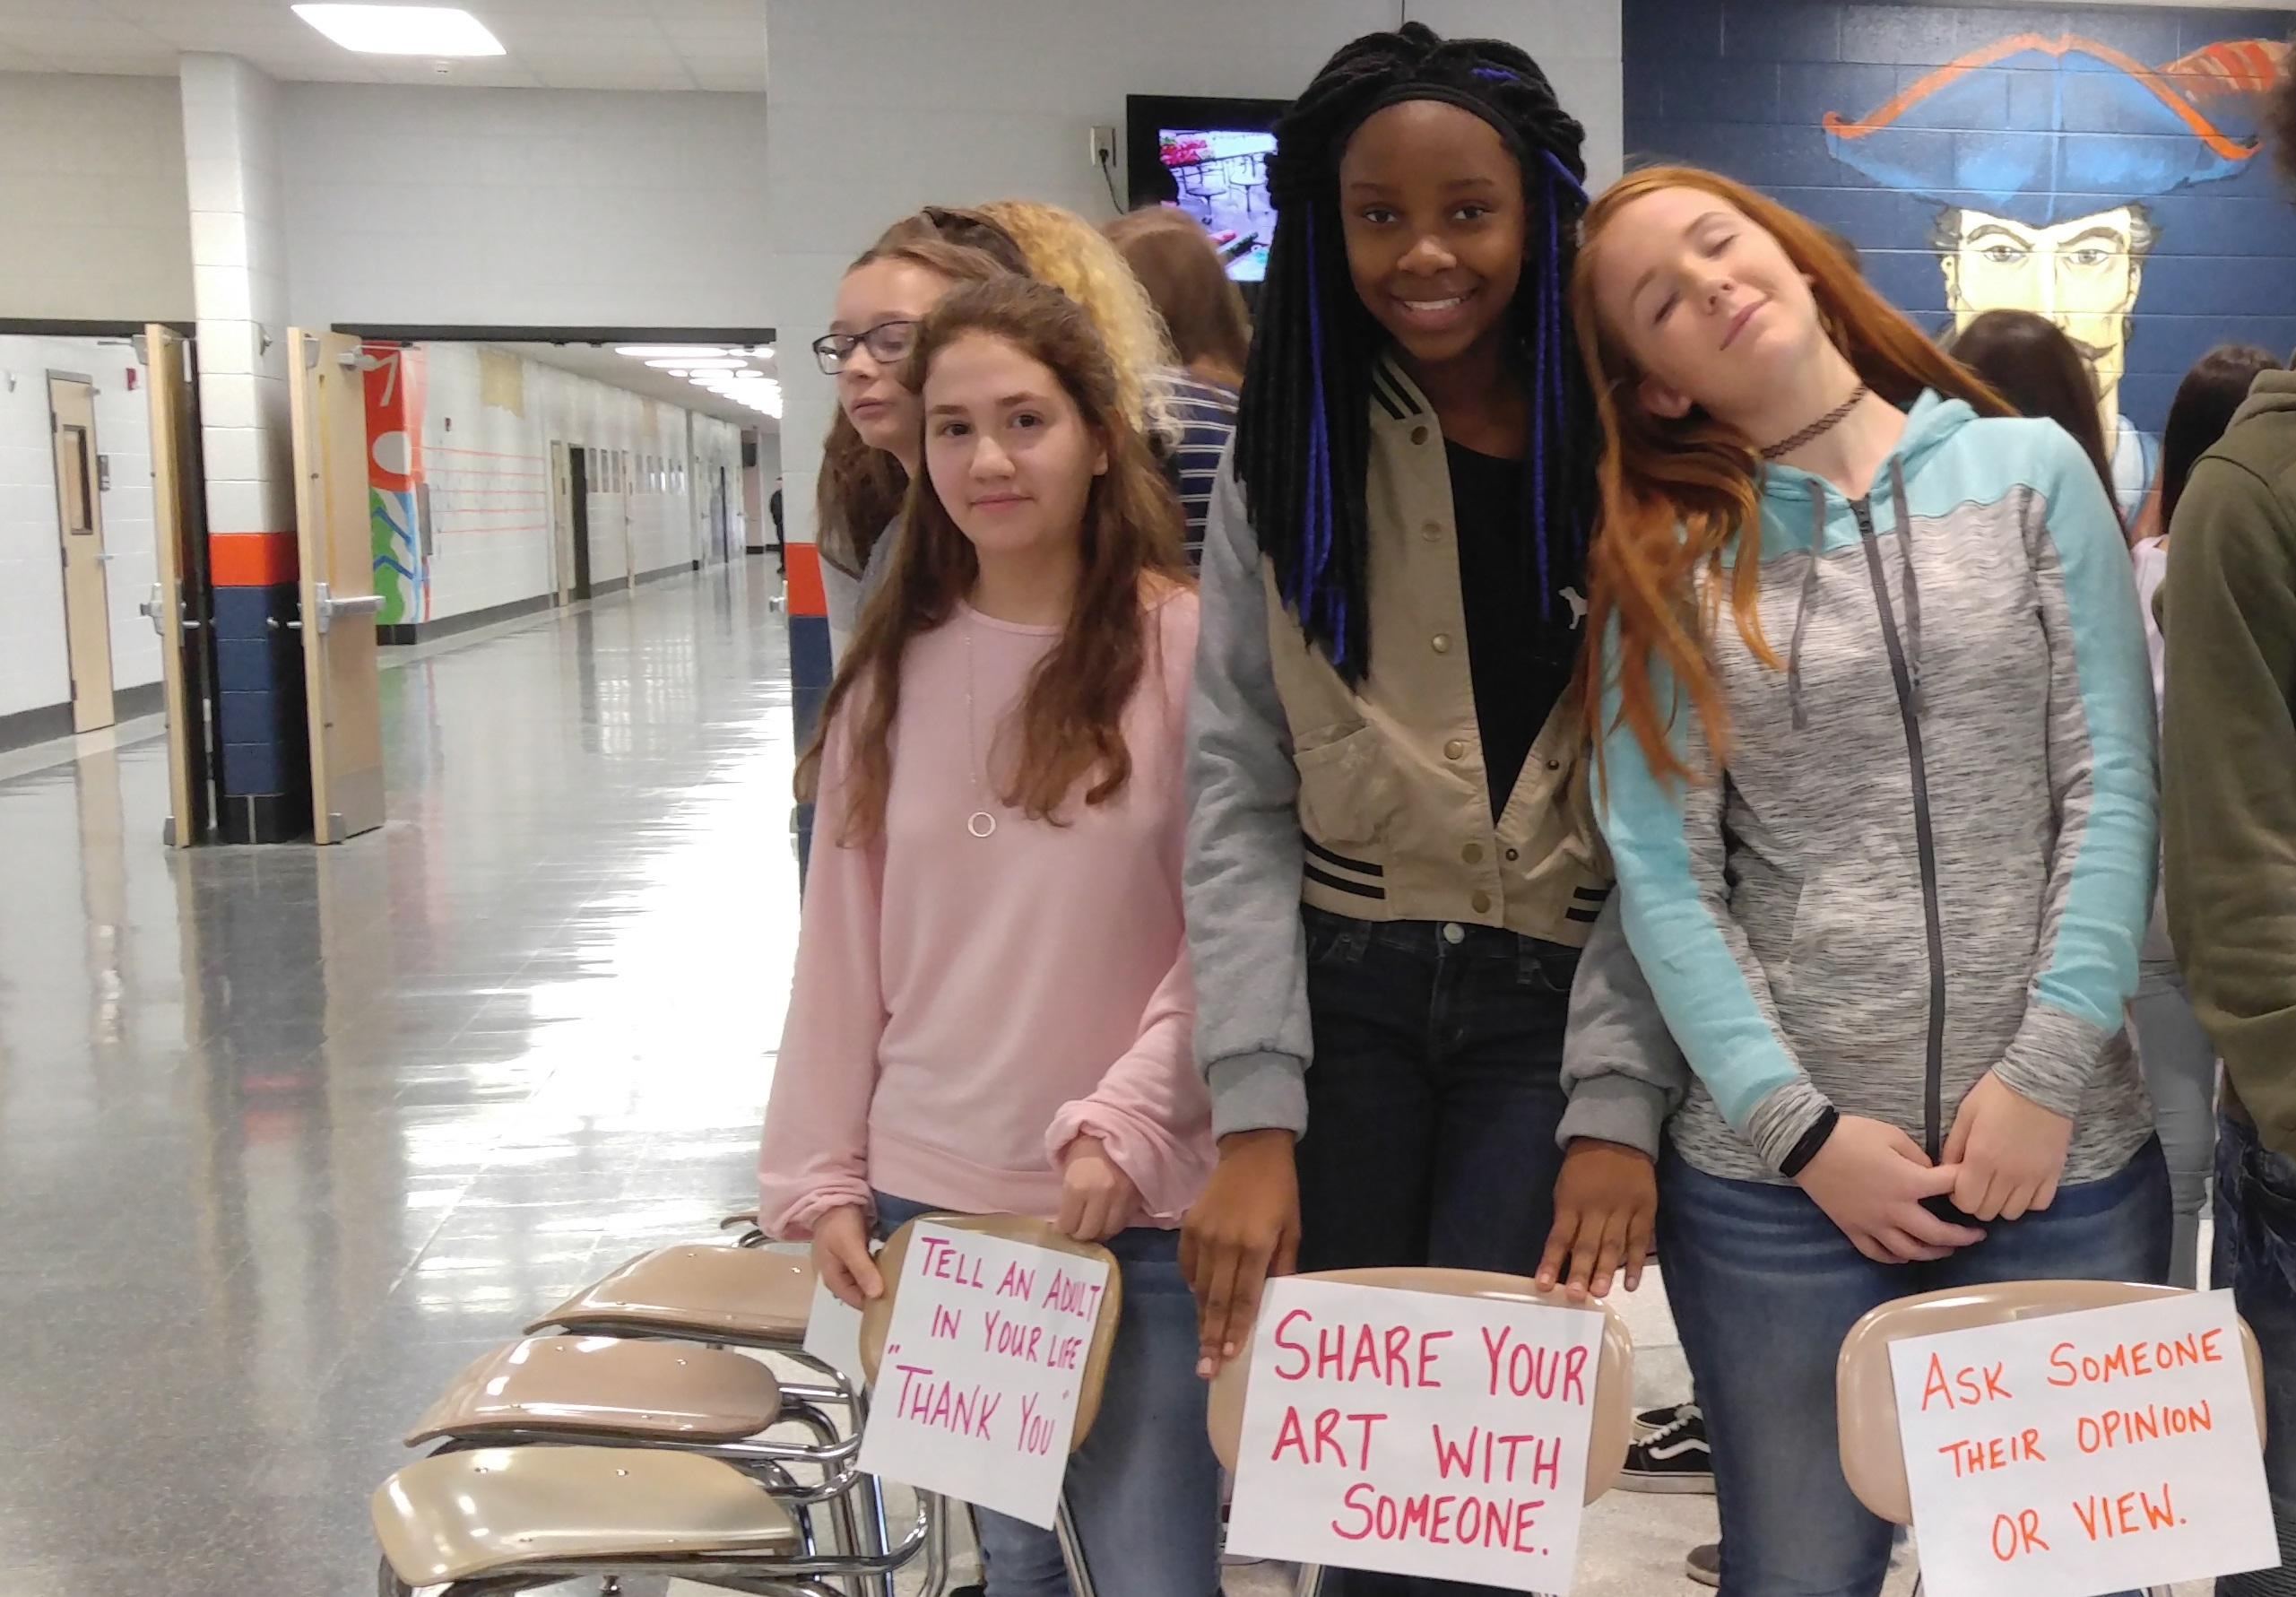 Students commit to be kind to each other